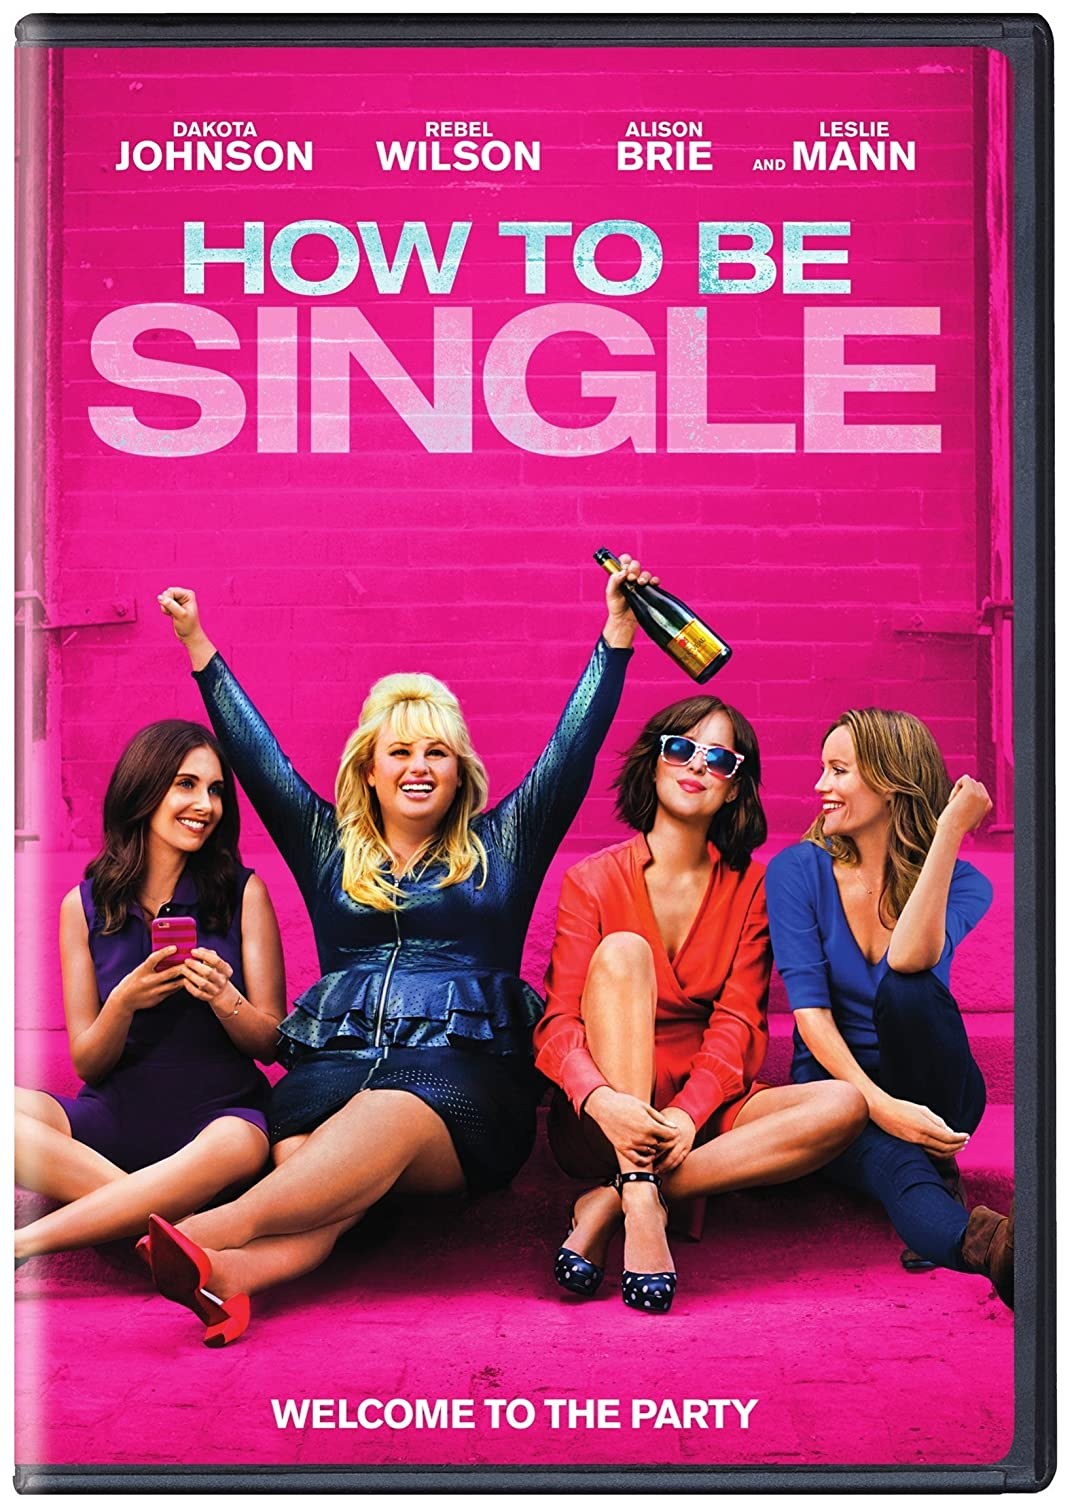 Amazon buy how to be single dvd blu ray online at best prices amazon buy how to be single dvd blu ray online at best prices in india movies tv shows ccuart Gallery